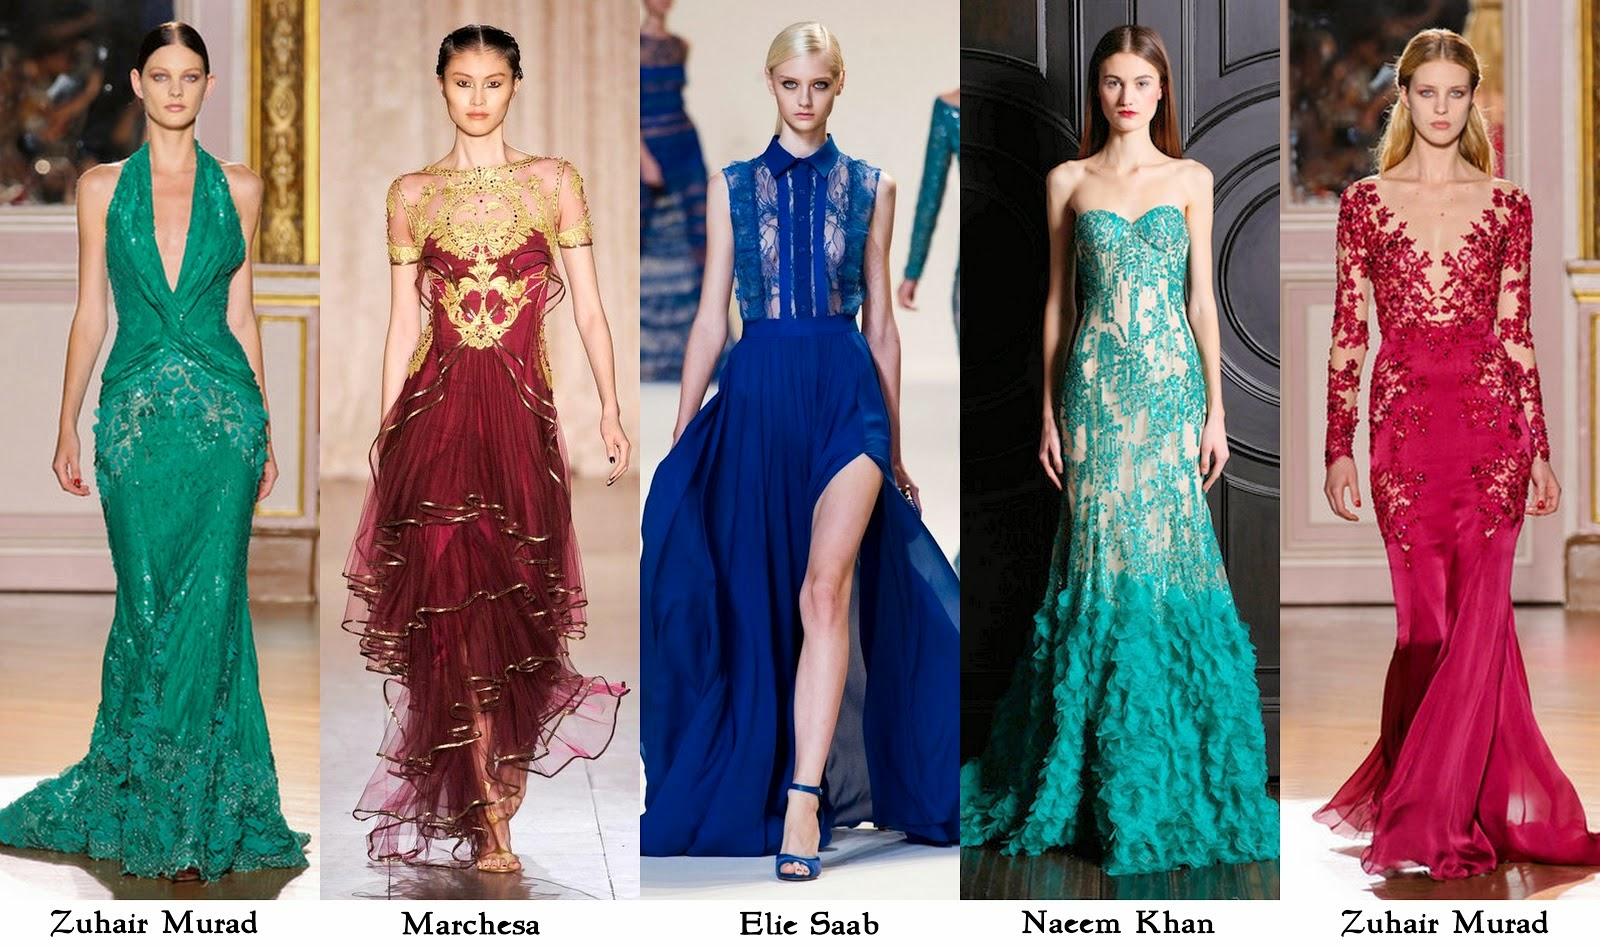 Fashion Evening Gown | Fashion Design